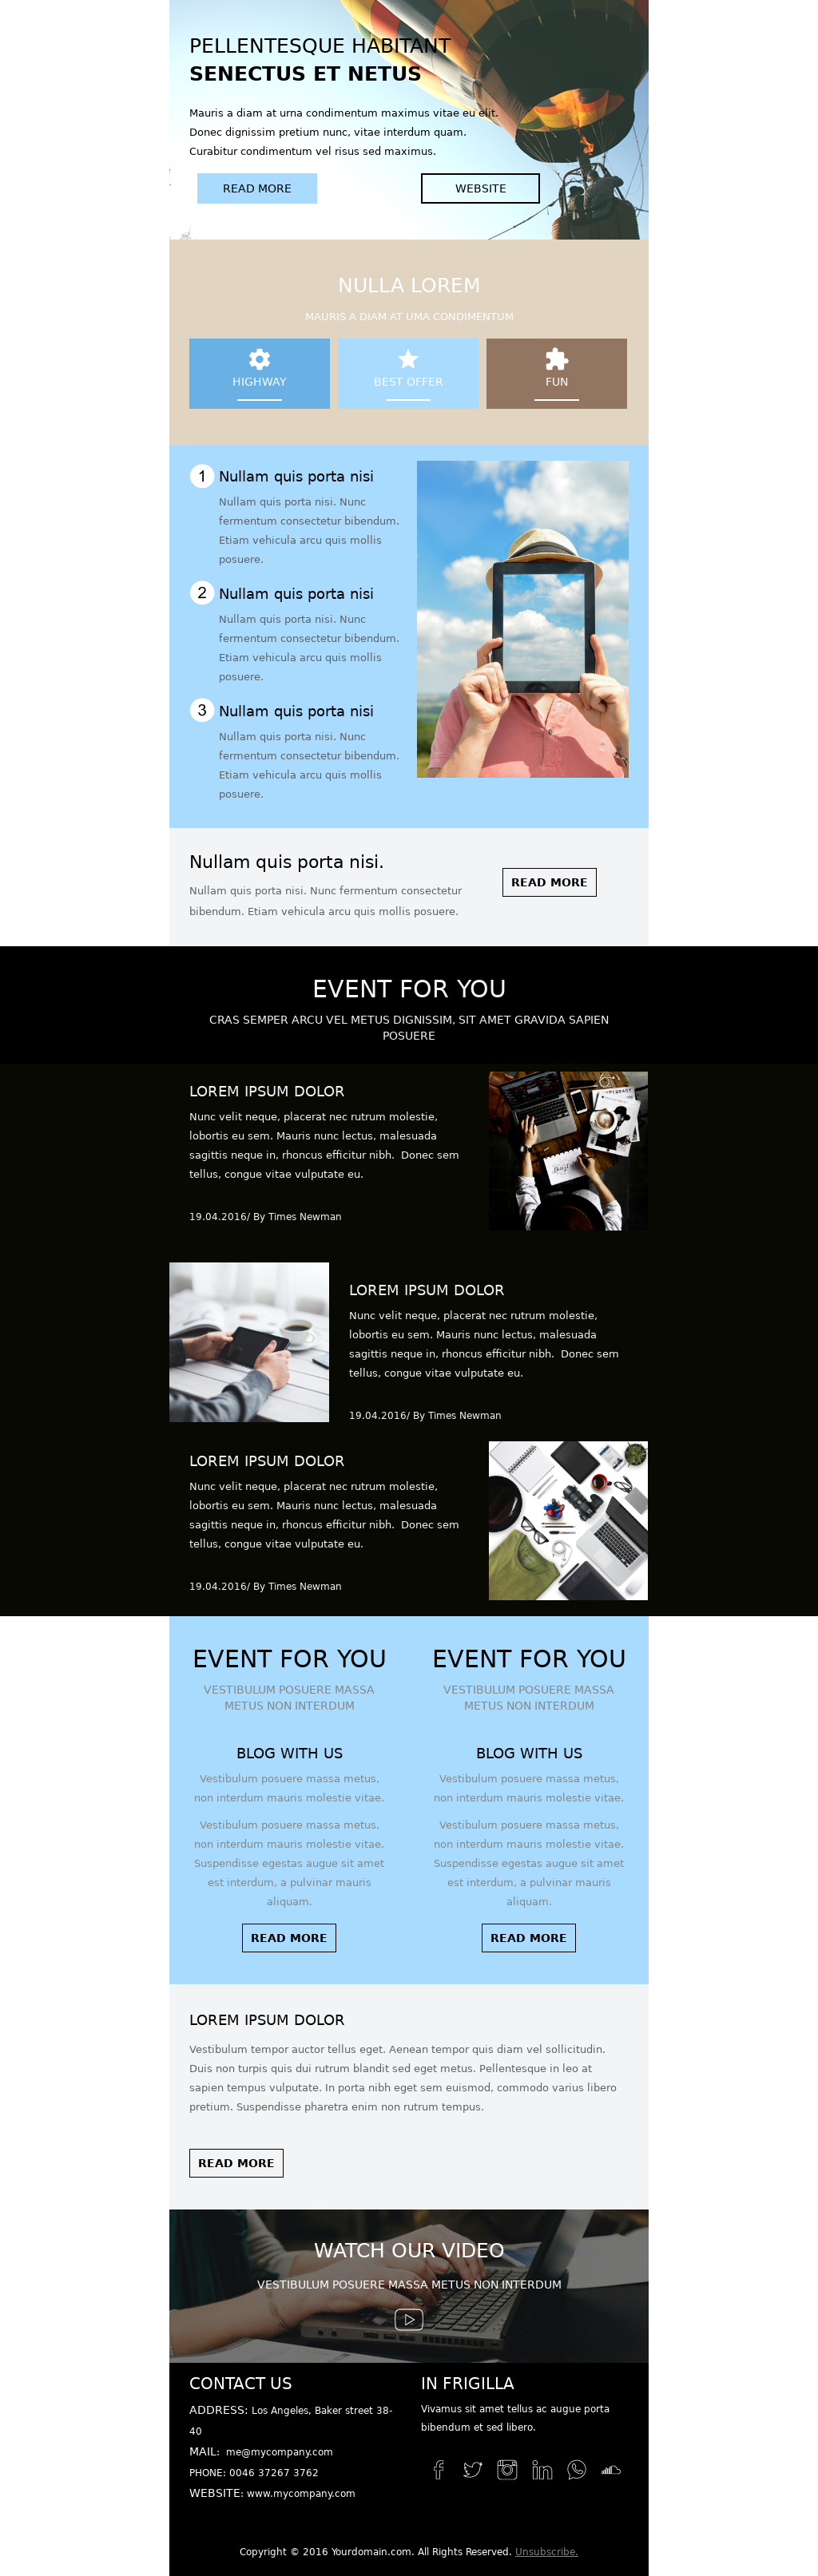 Travel and entertainment focused newsletter template where you can promote your events, offers, and latest blog content